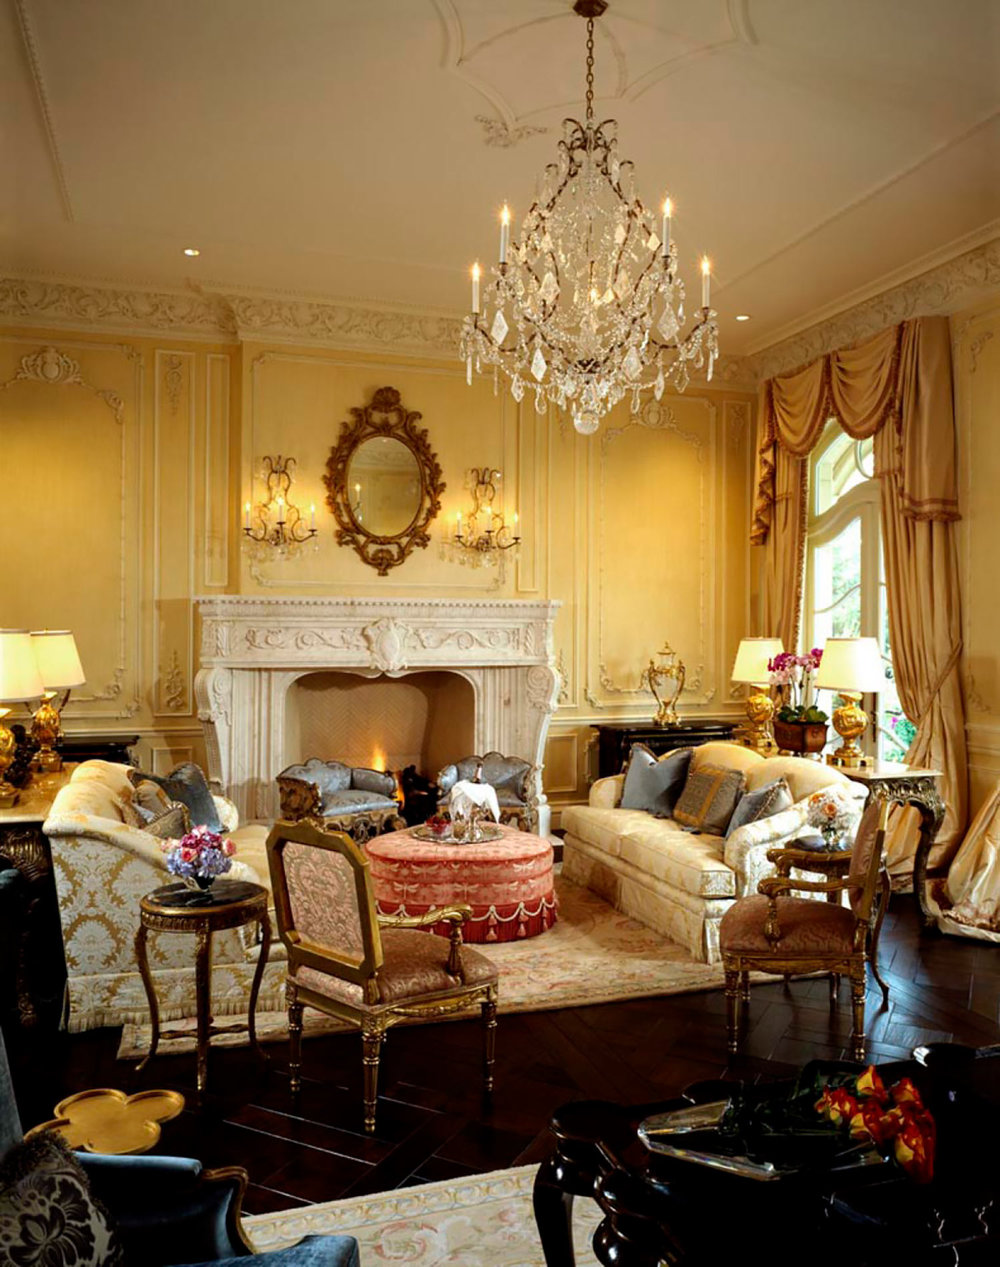 window treatments, custom upholstery, throw pillows Interior Design: Howard Design Group